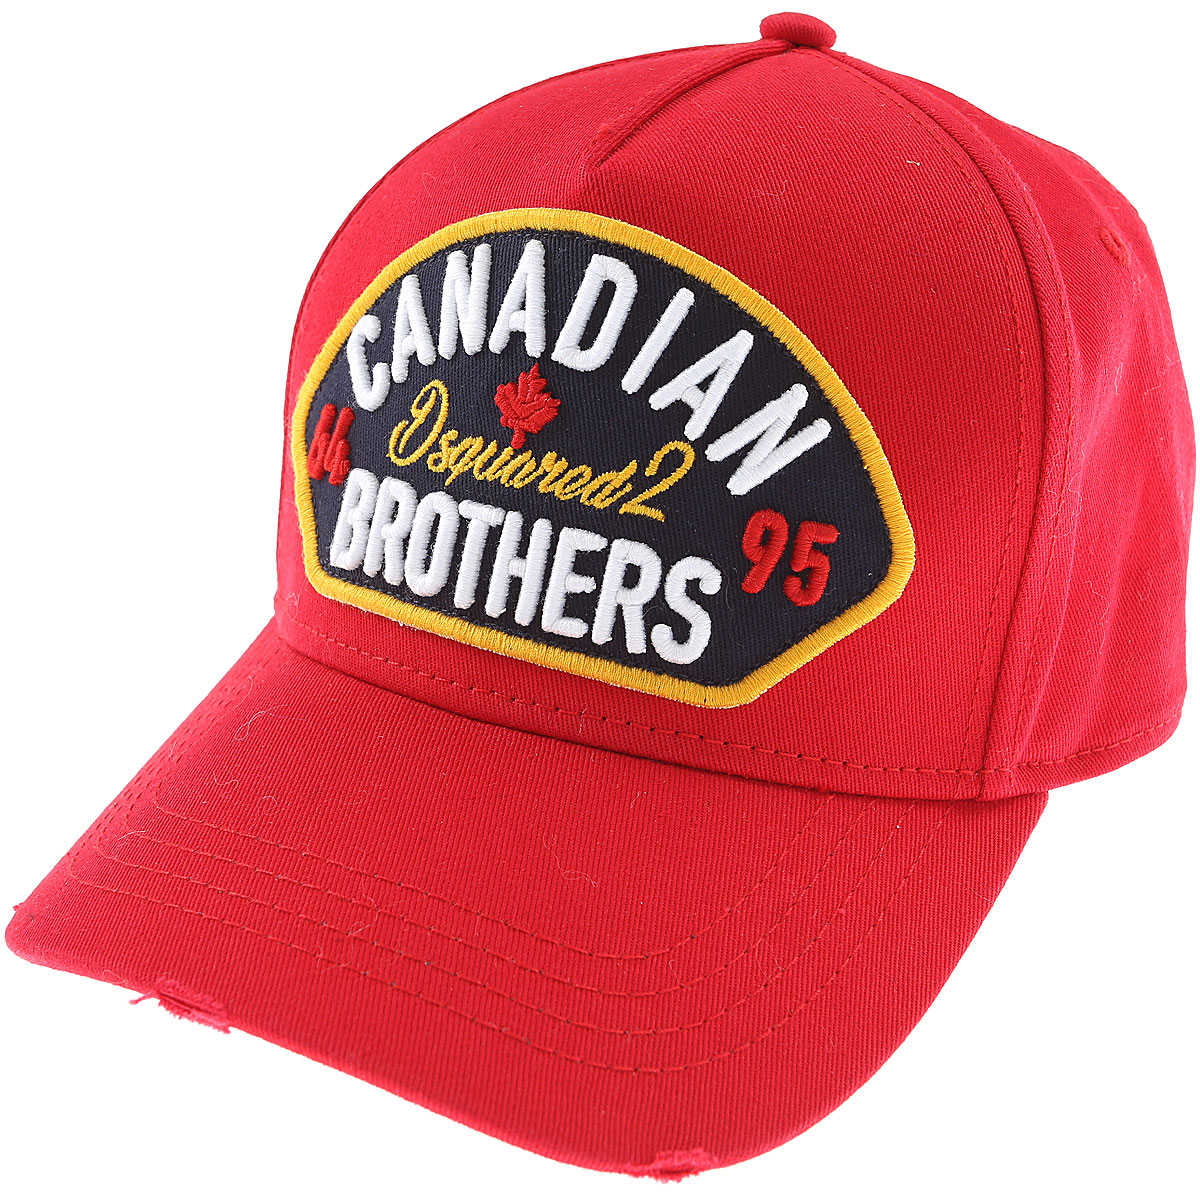 Dsquared2 Hat for Women in Outlet Red USA - GOOFASH